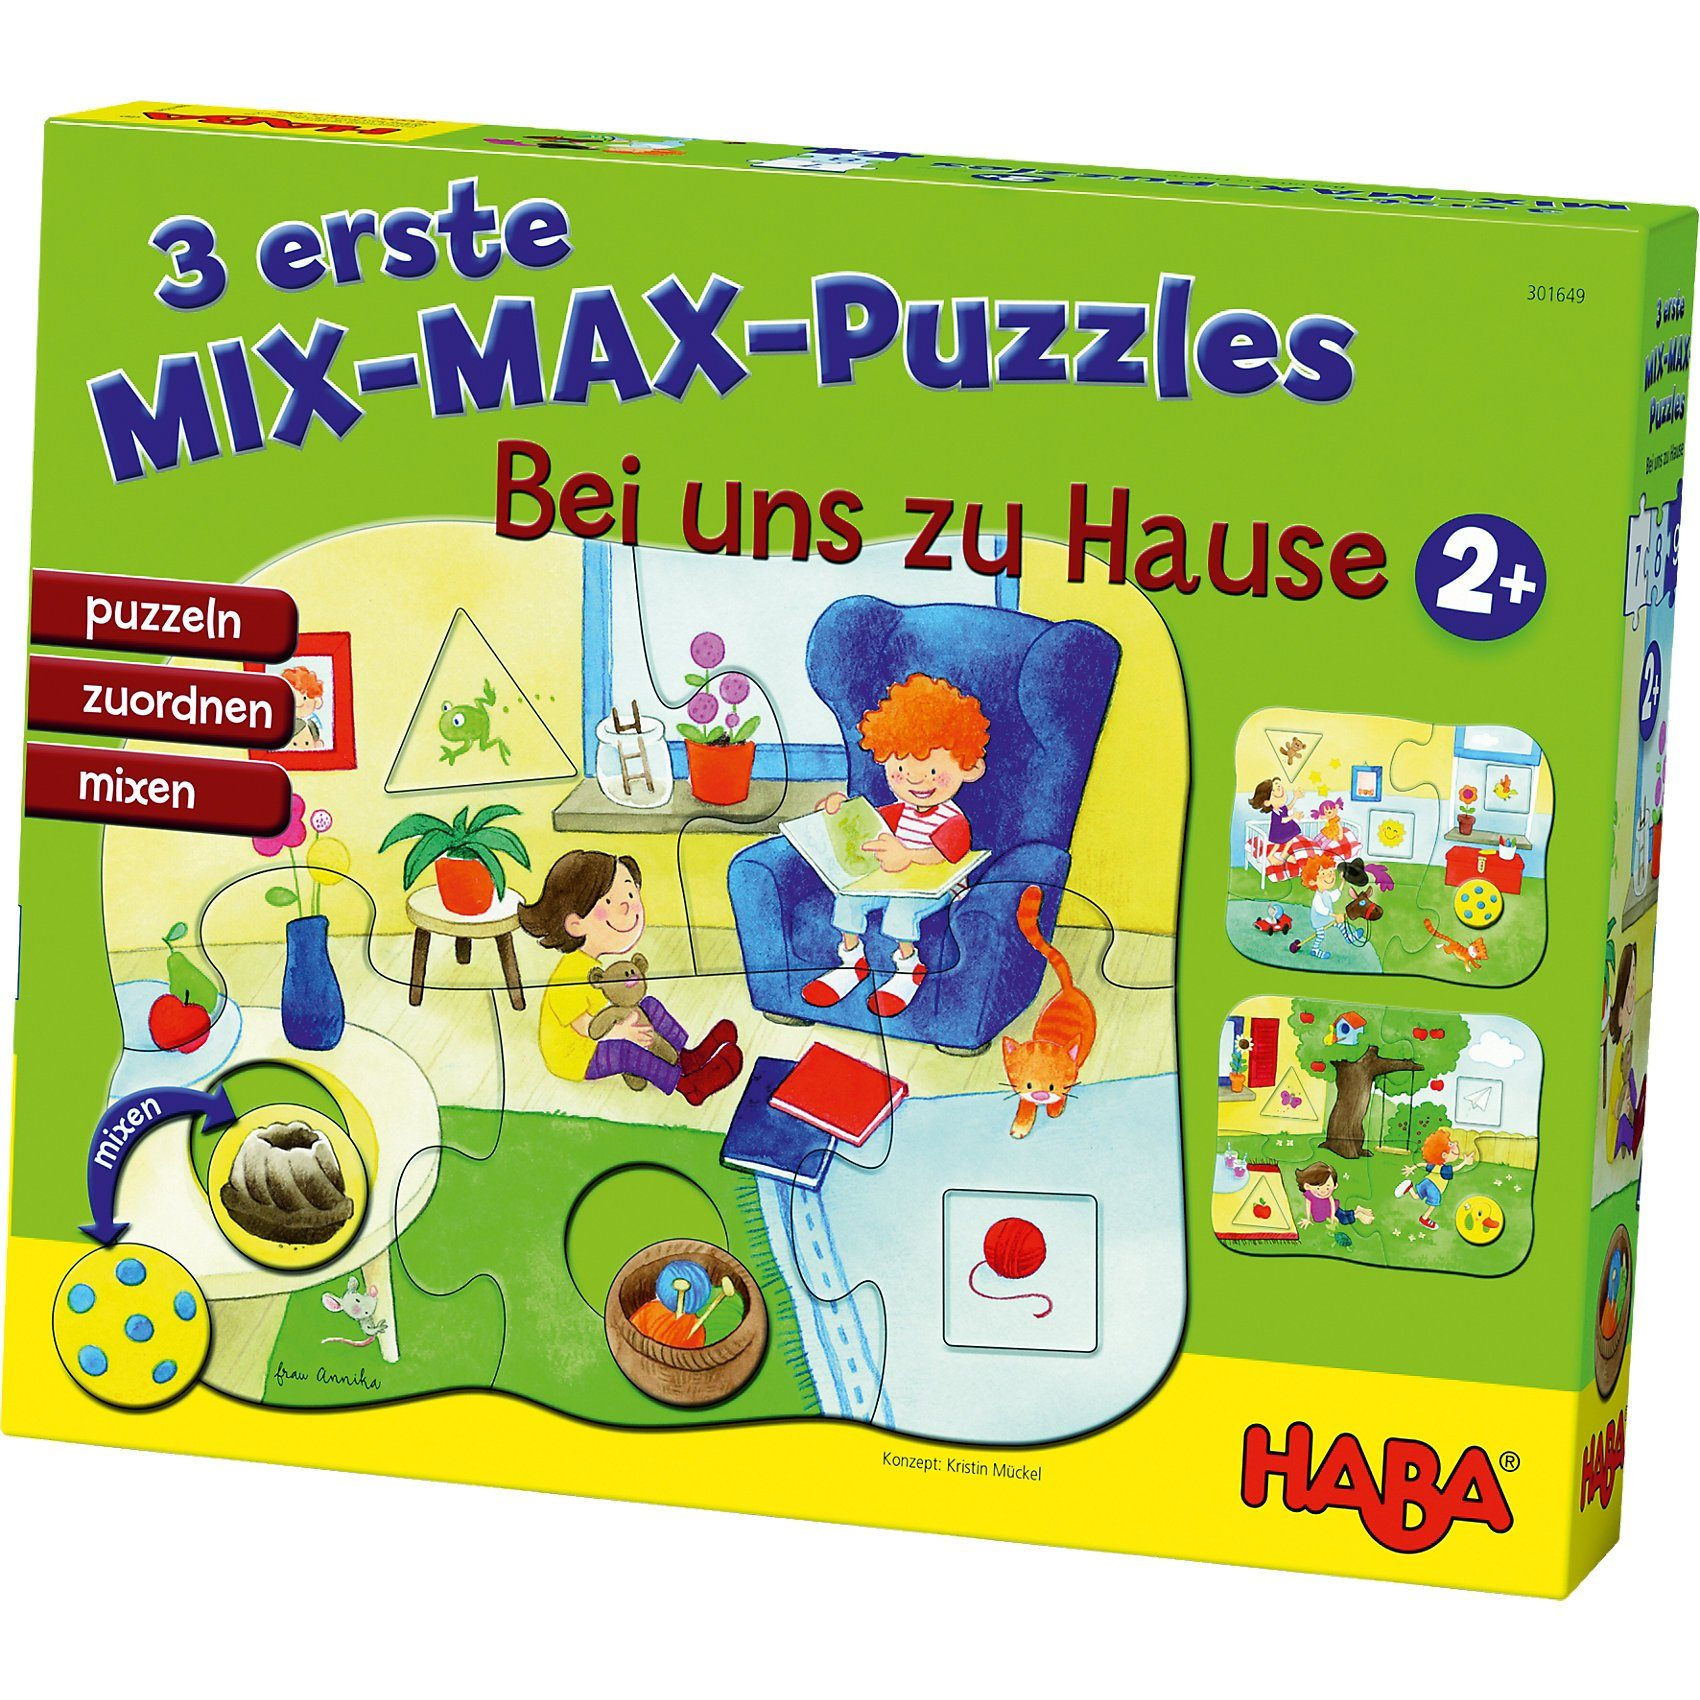 Haba 3 erste Mix-Max-Puzzles - Bei uns Zuhause